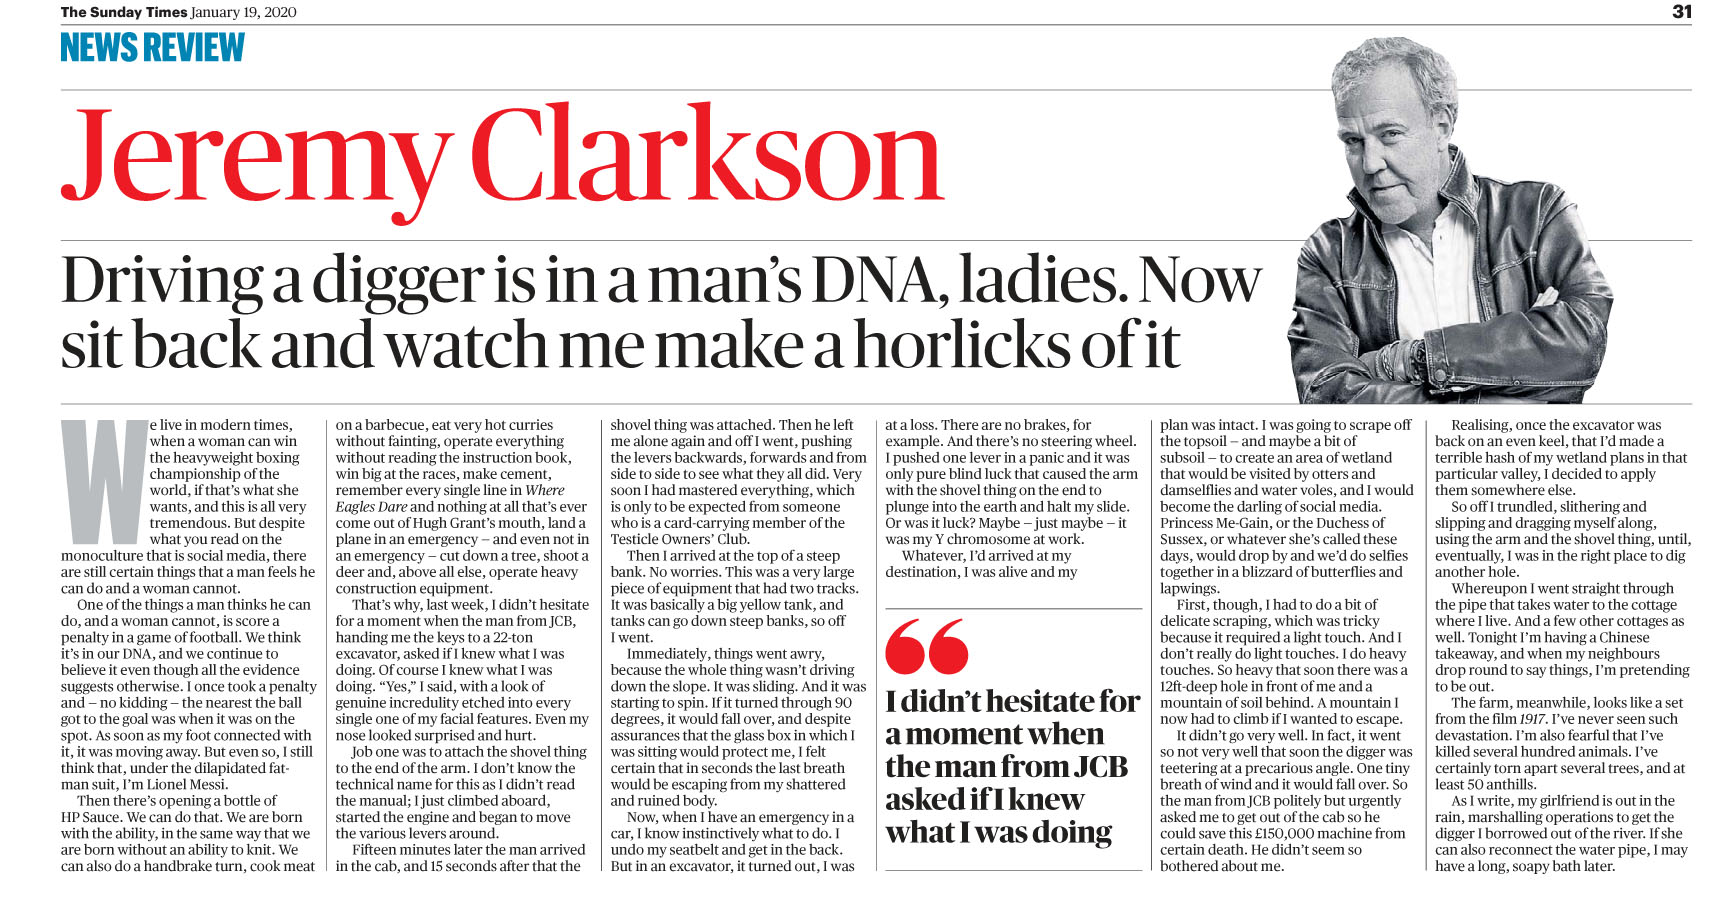 The Sunday Times UK - 19 January 2020 JClarkson.jpg